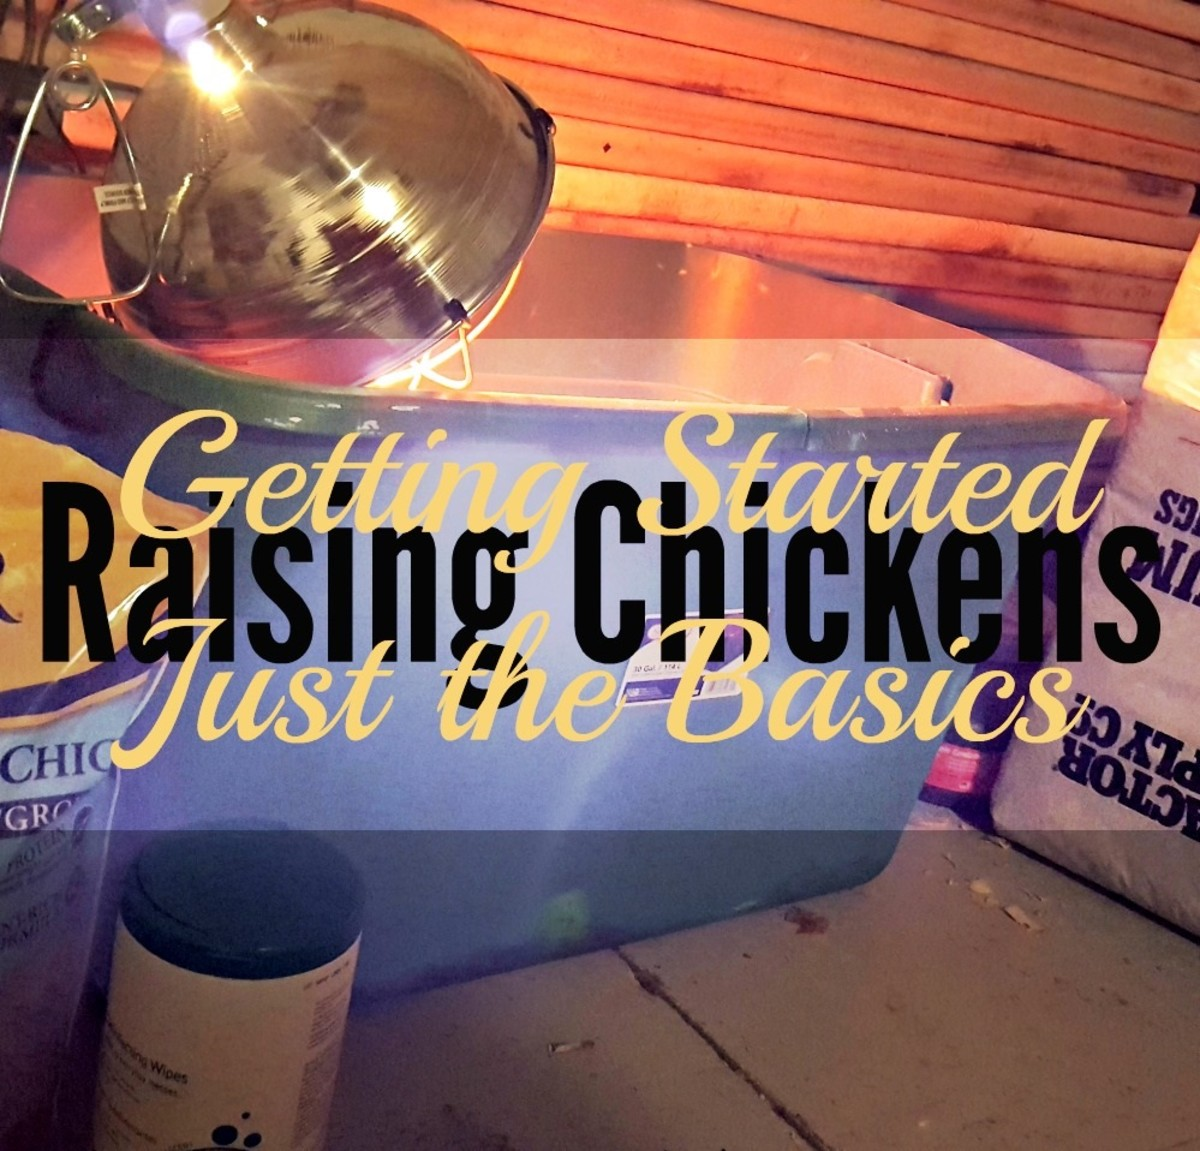 Raising Chickens: Getting Started With Just the Basics